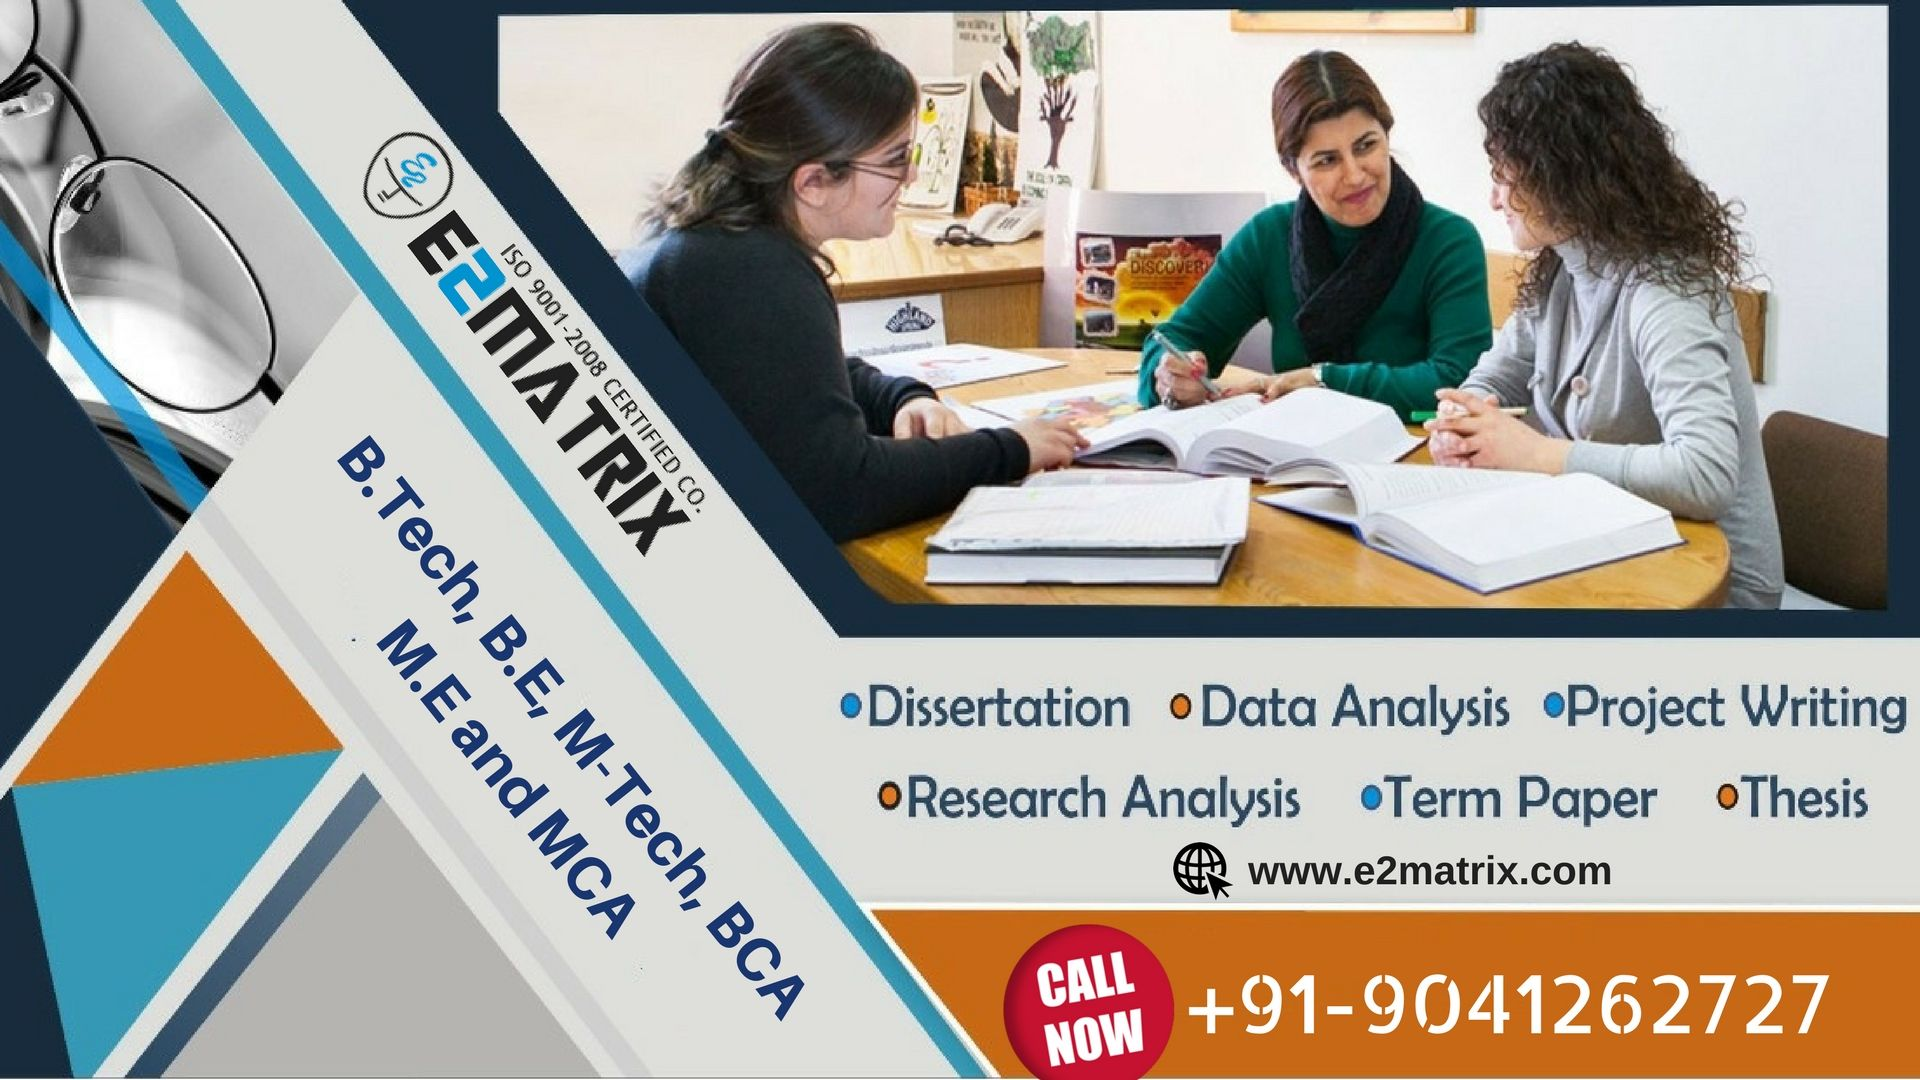 Pattern of term paper